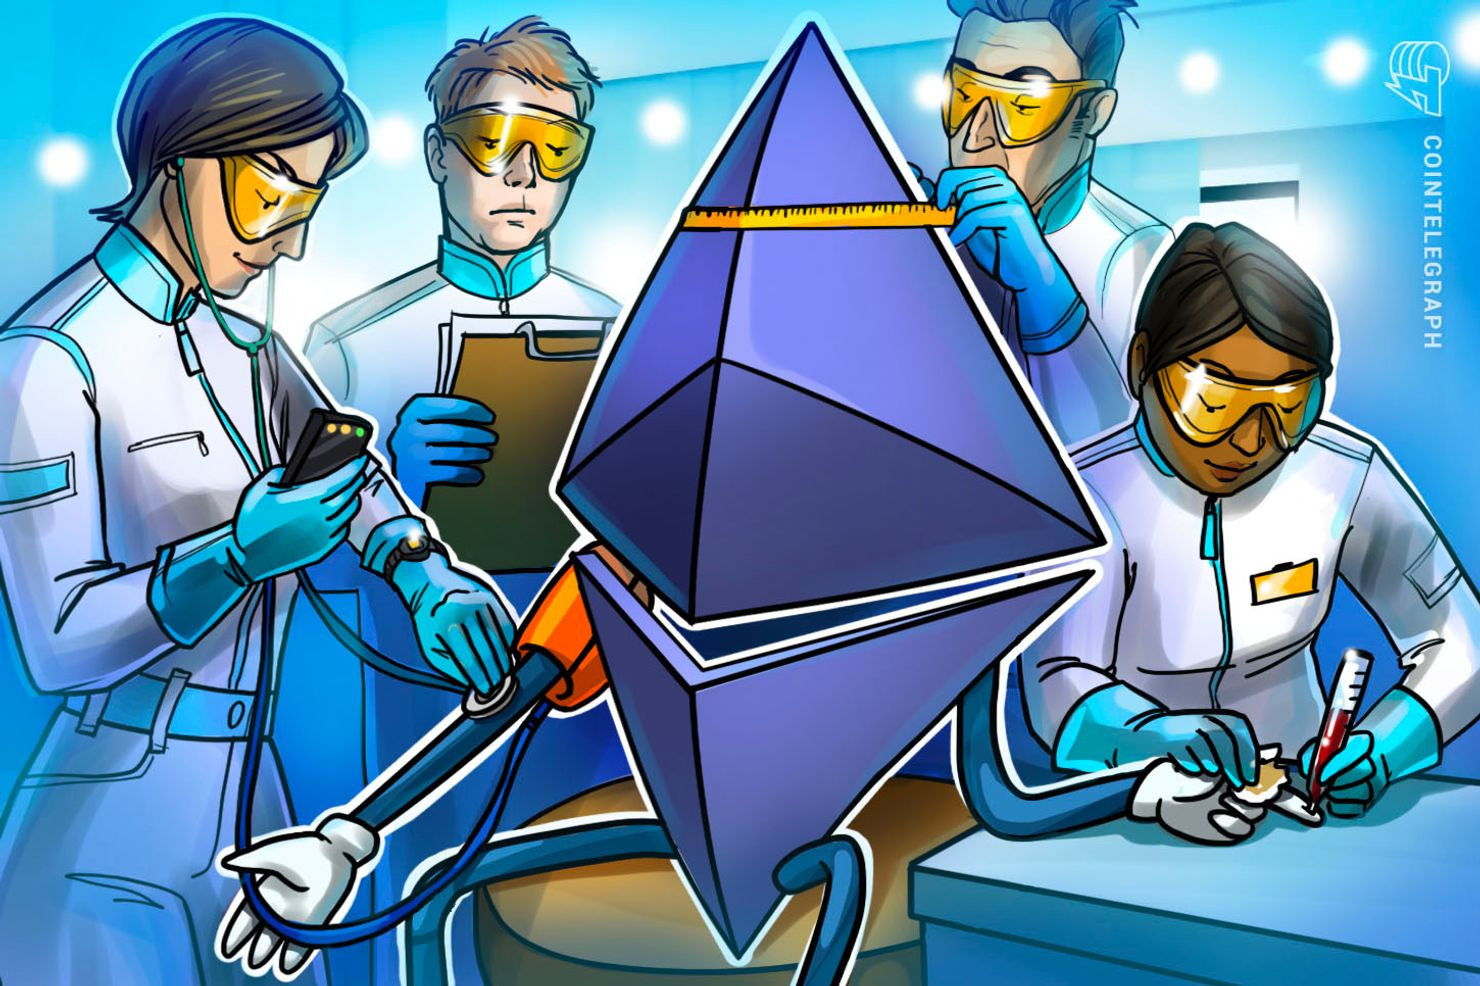 Ethereum Daily Mining Rewards Аre at Lowest Level Ever Reported